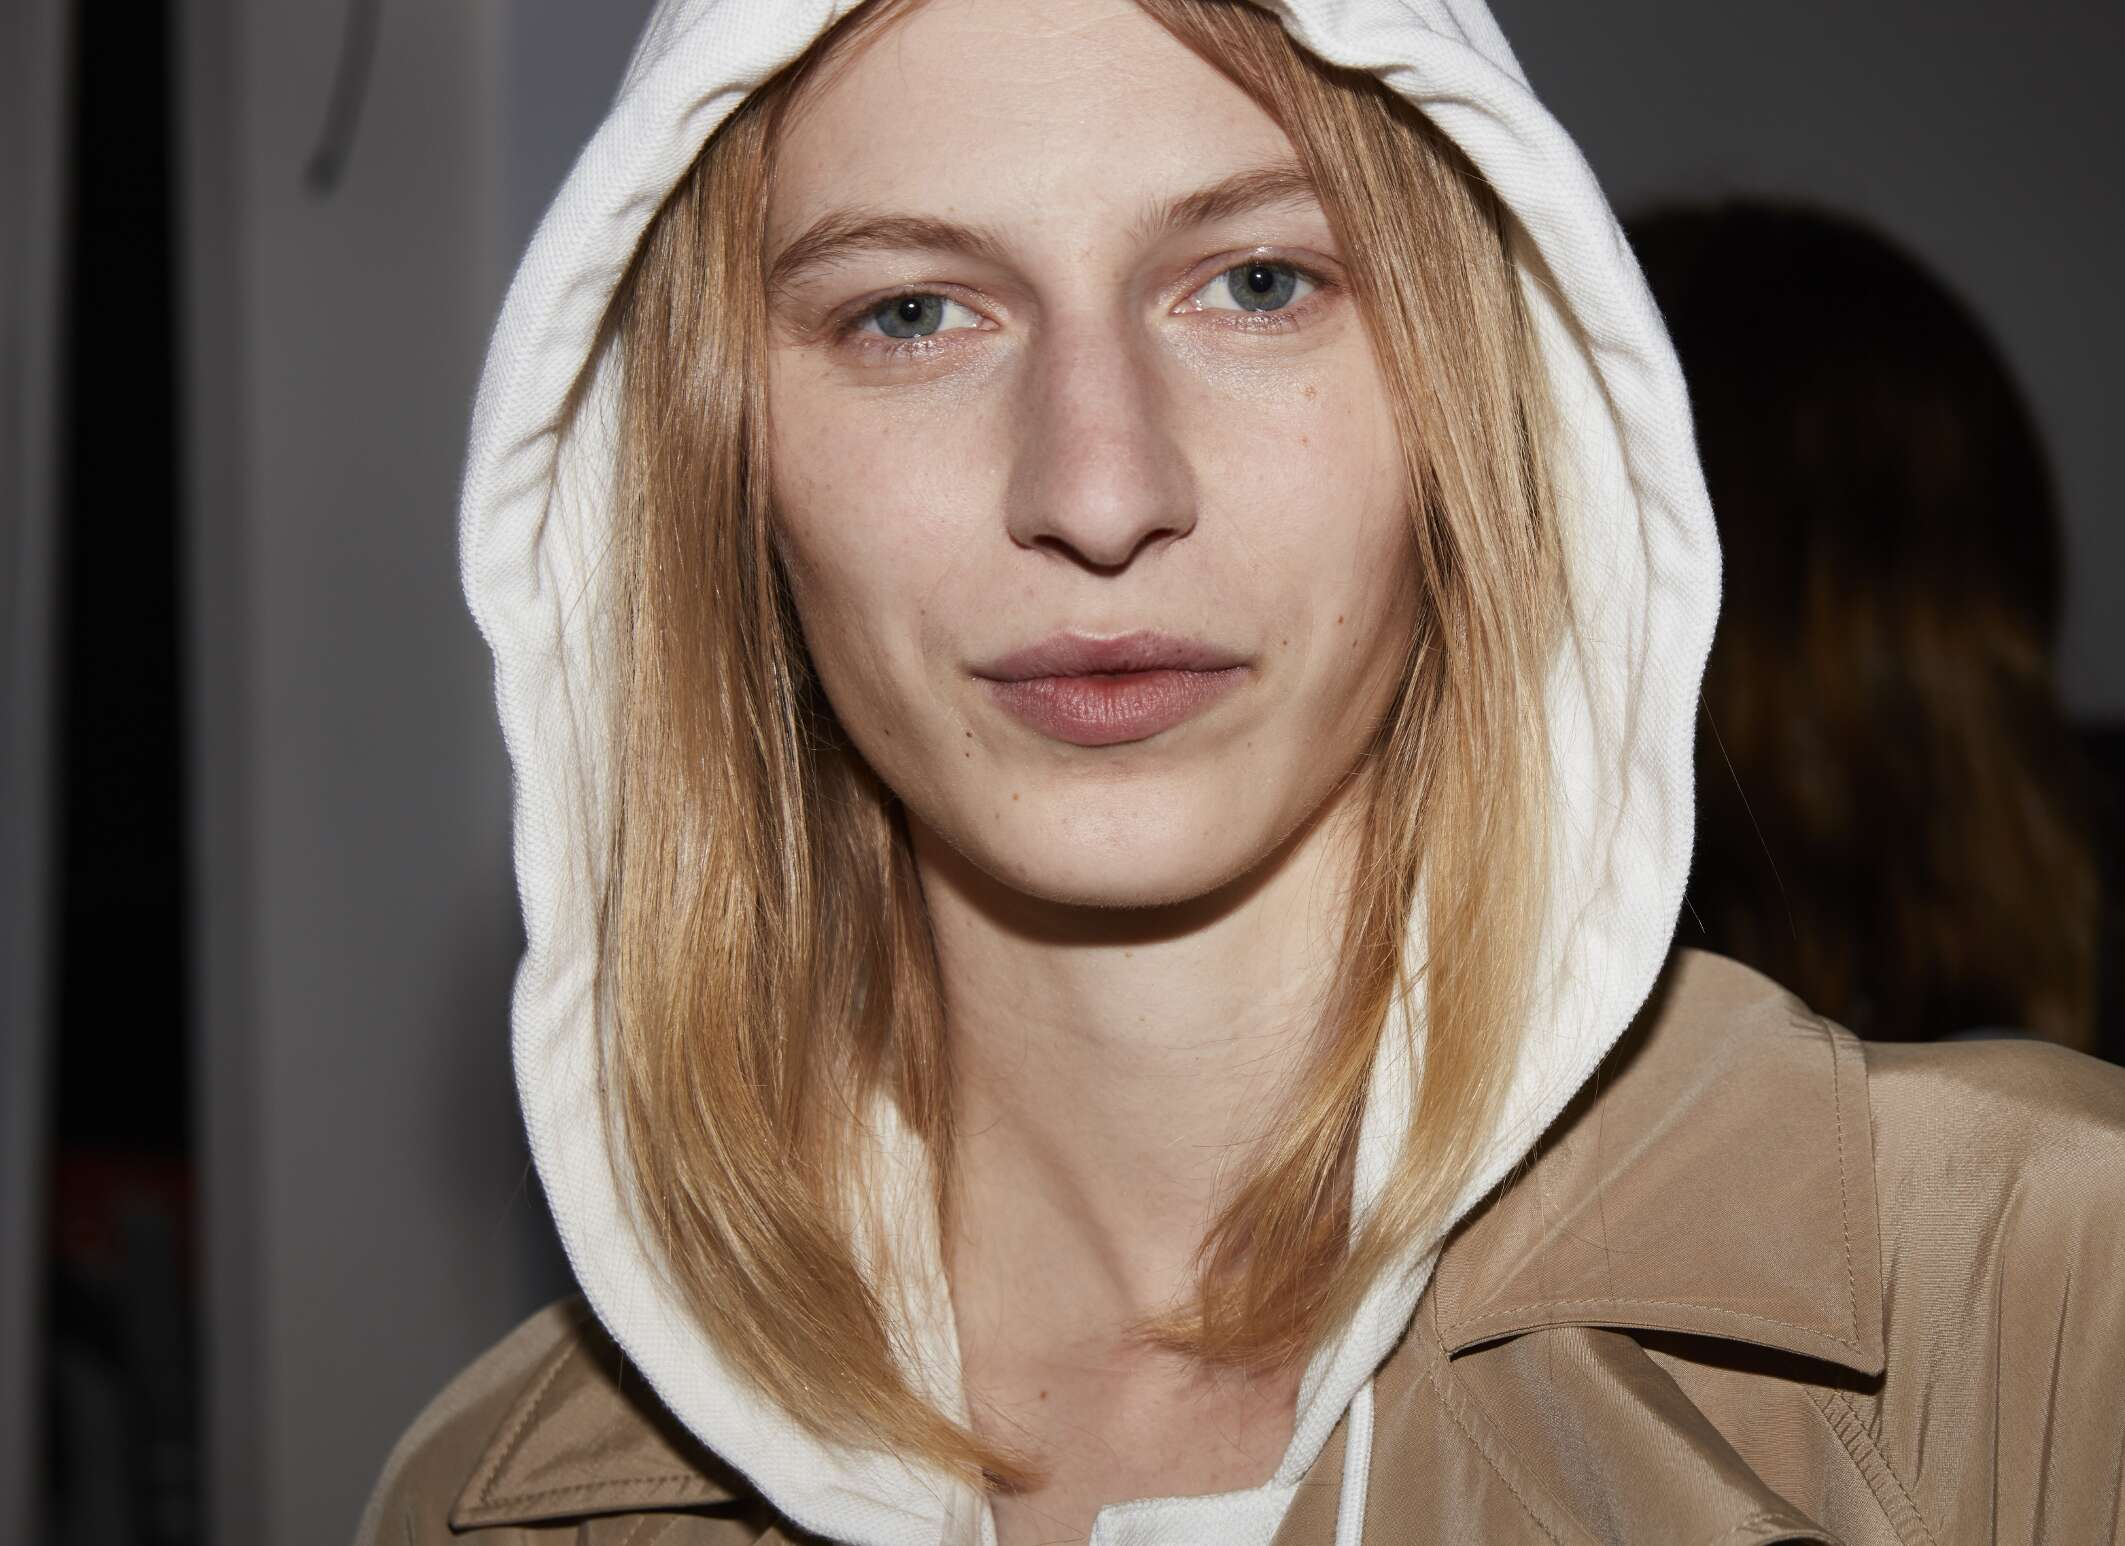 Backstage Lacoste Fashion Show Model New York